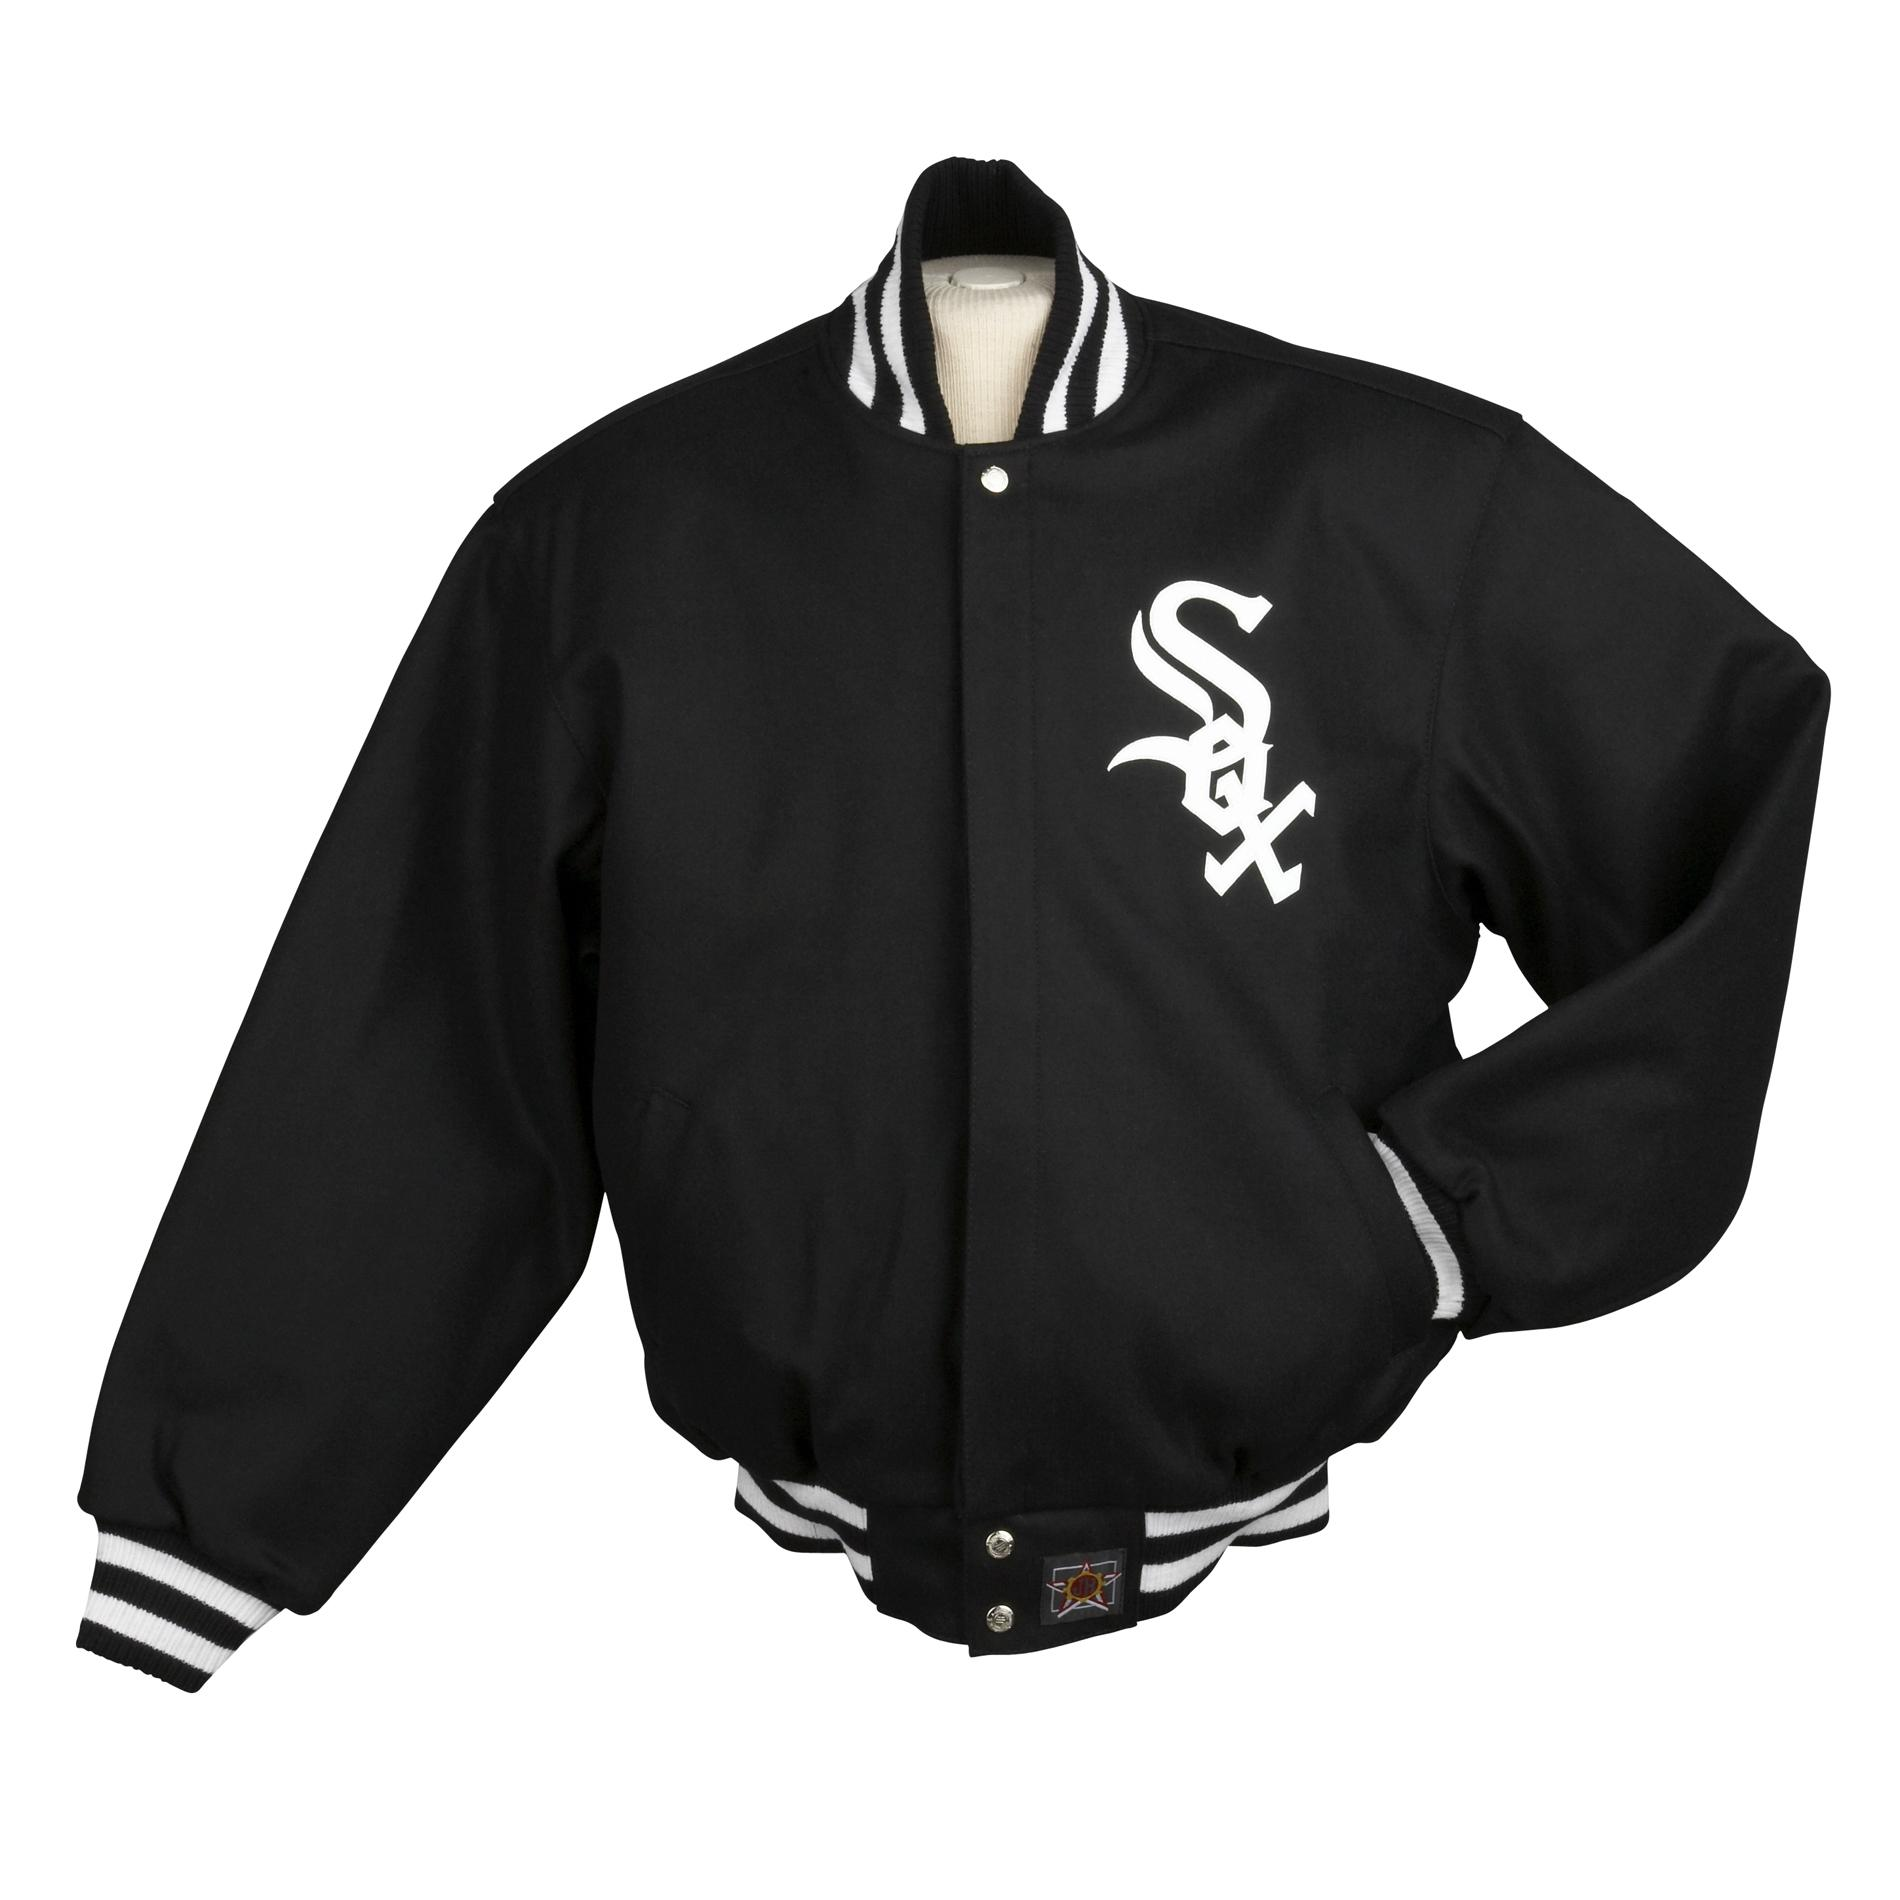 JH Designs Men's Chicago White Sox Domestic Wool Jacket